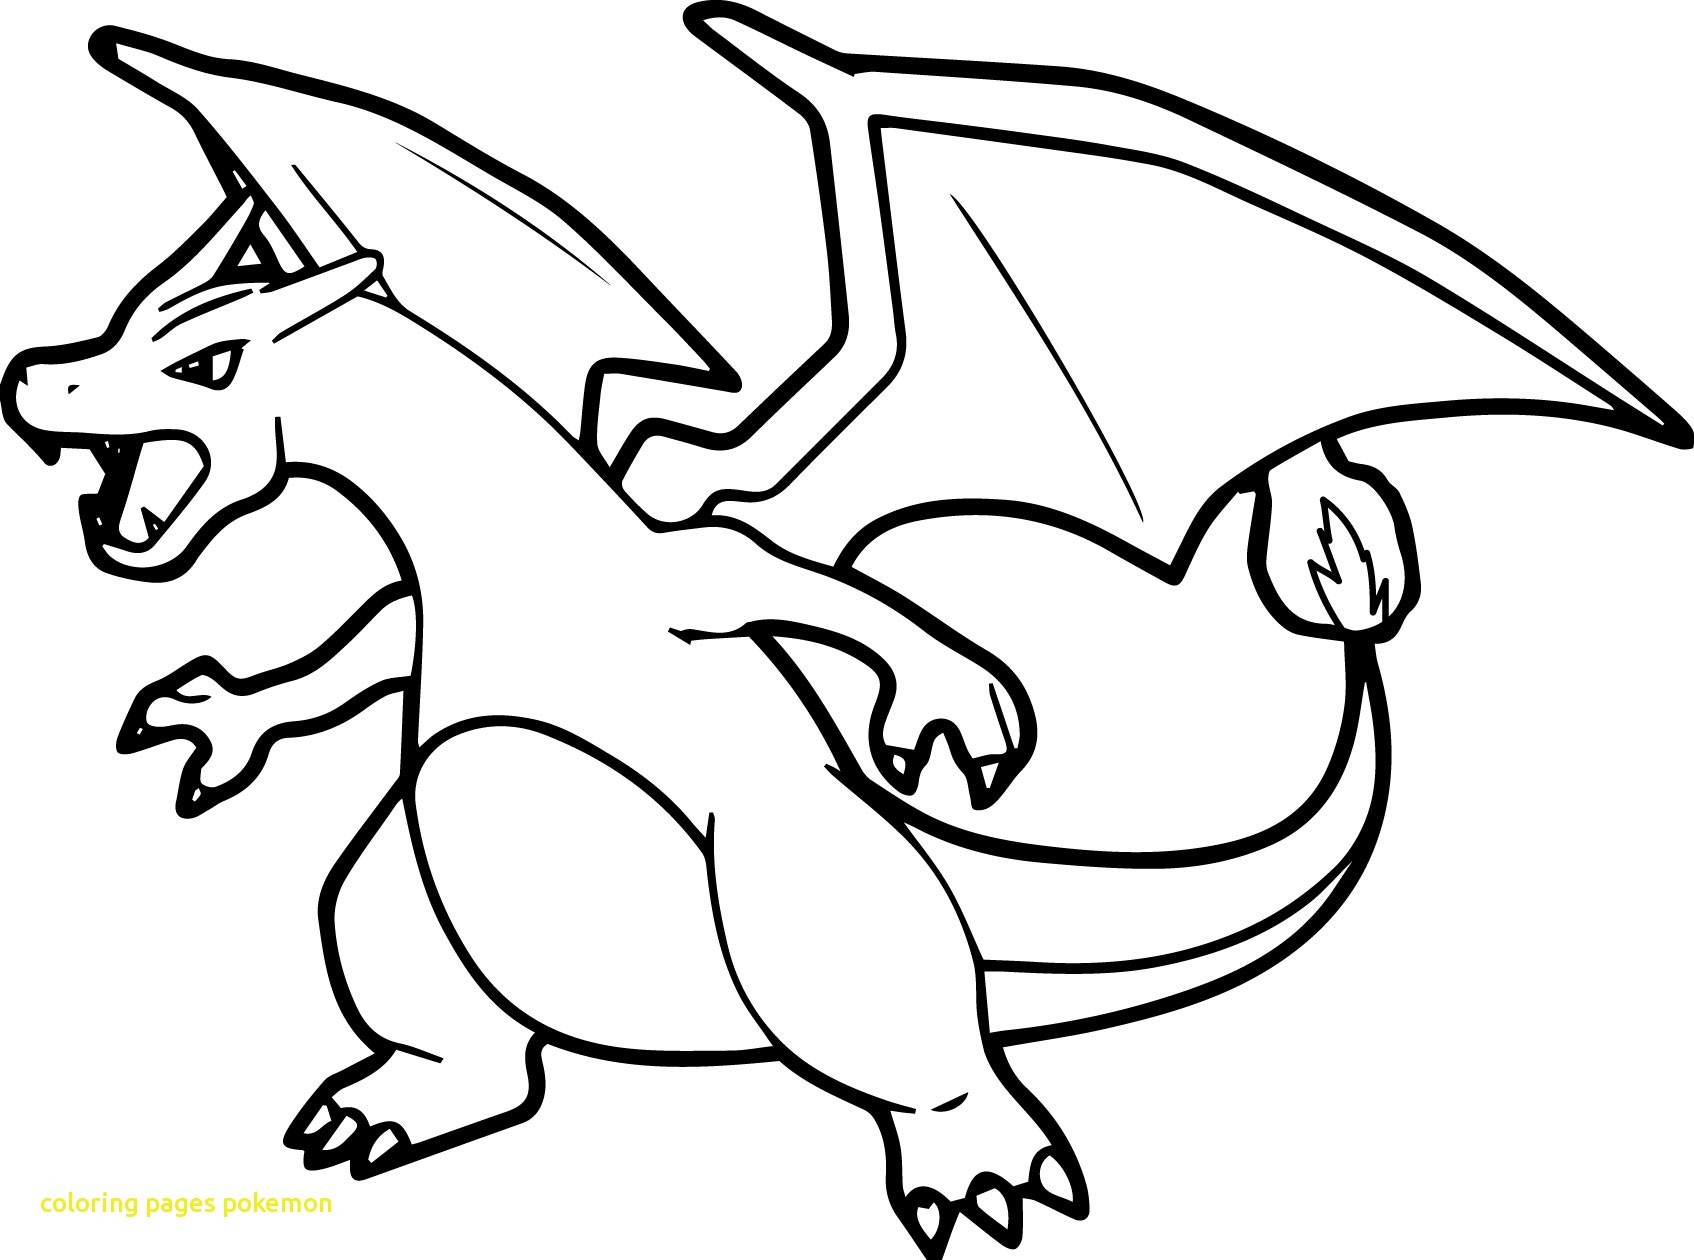 1694x1260 Coloring Pages Pokemon With Pokemon Coloring Pages Mega Charizard